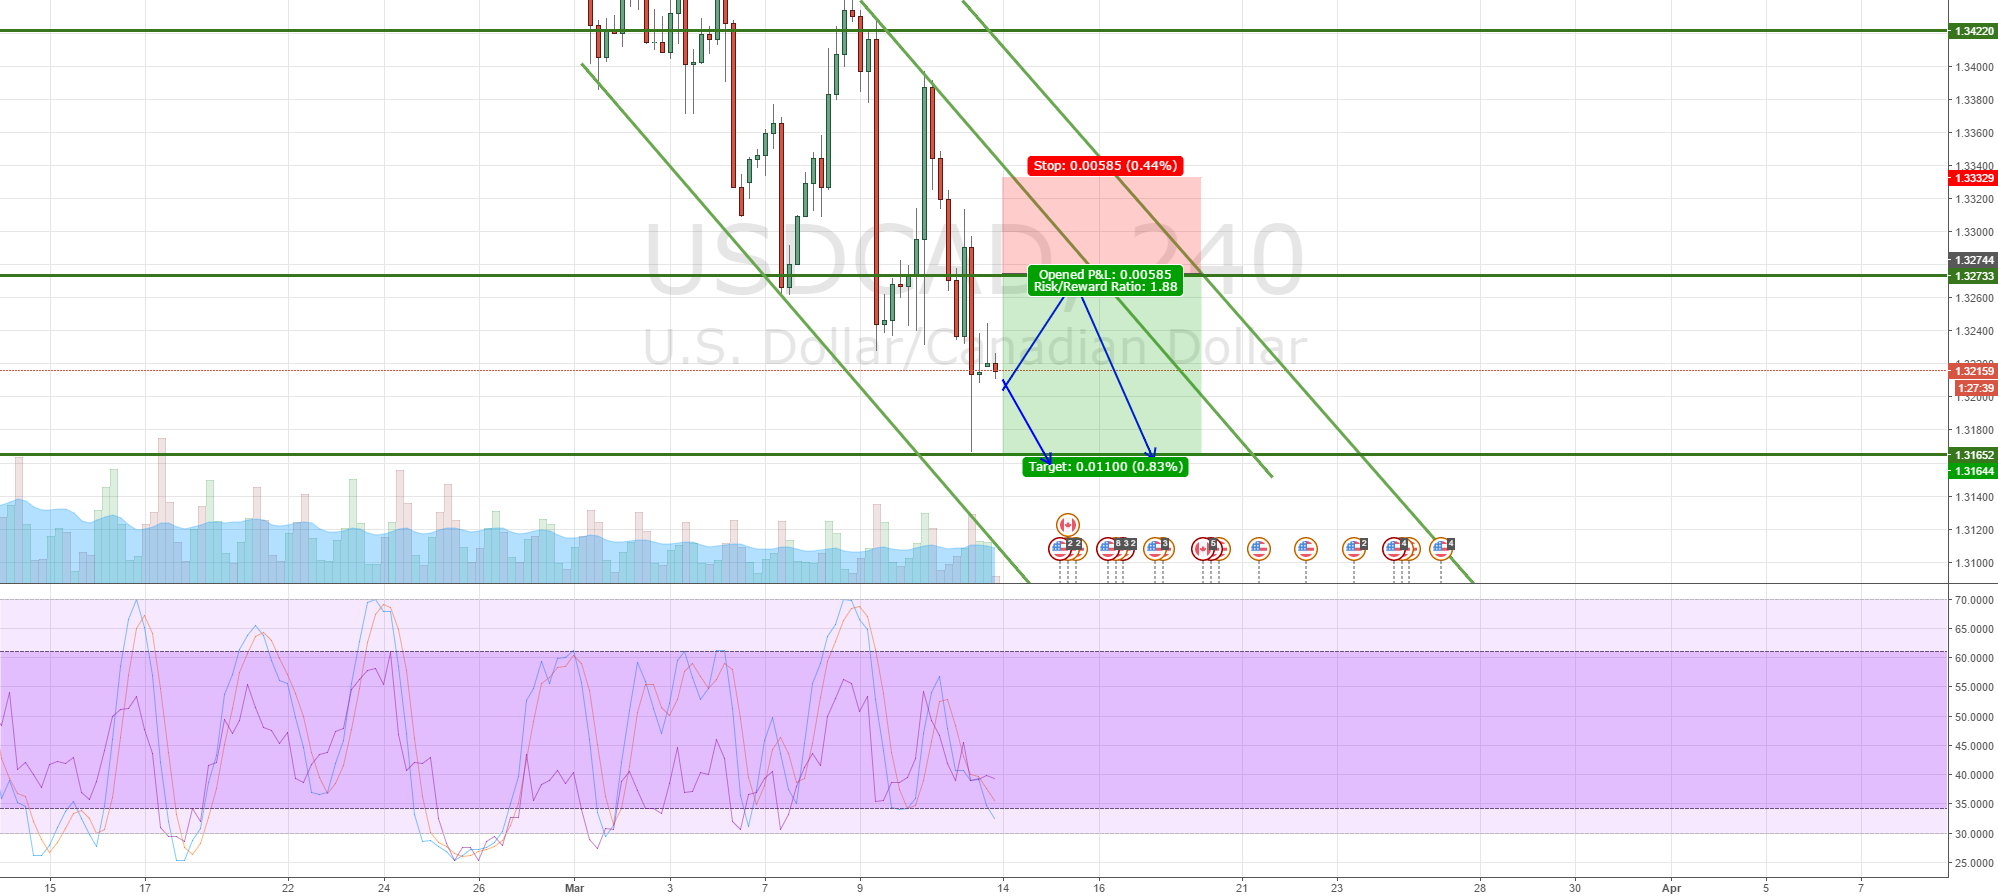 USDCAD continue to head lower